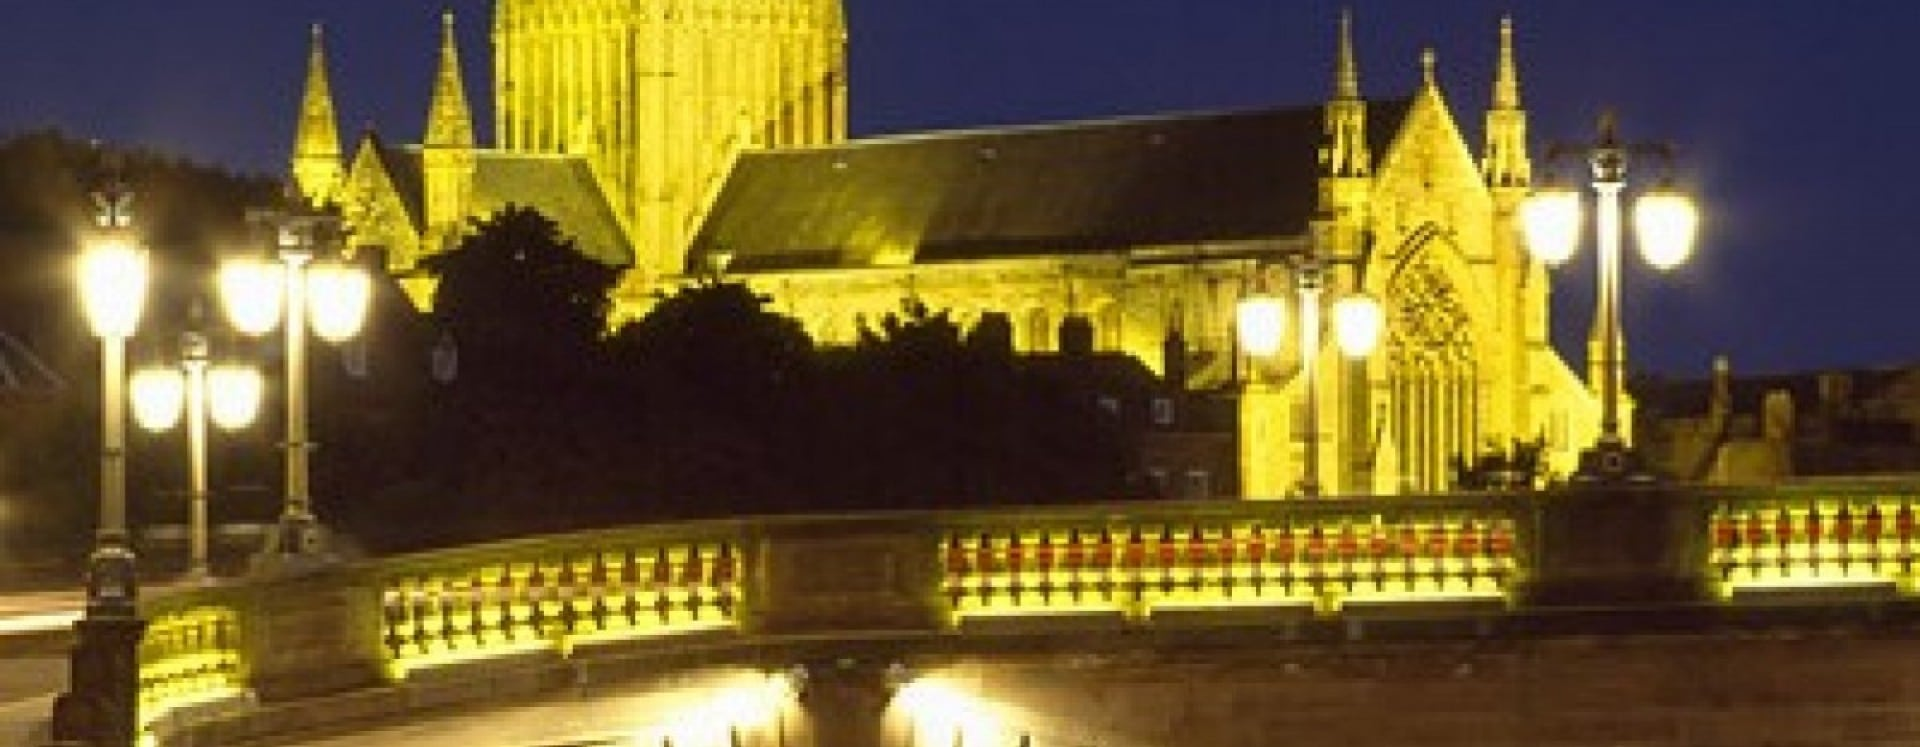 worcester cathedral night